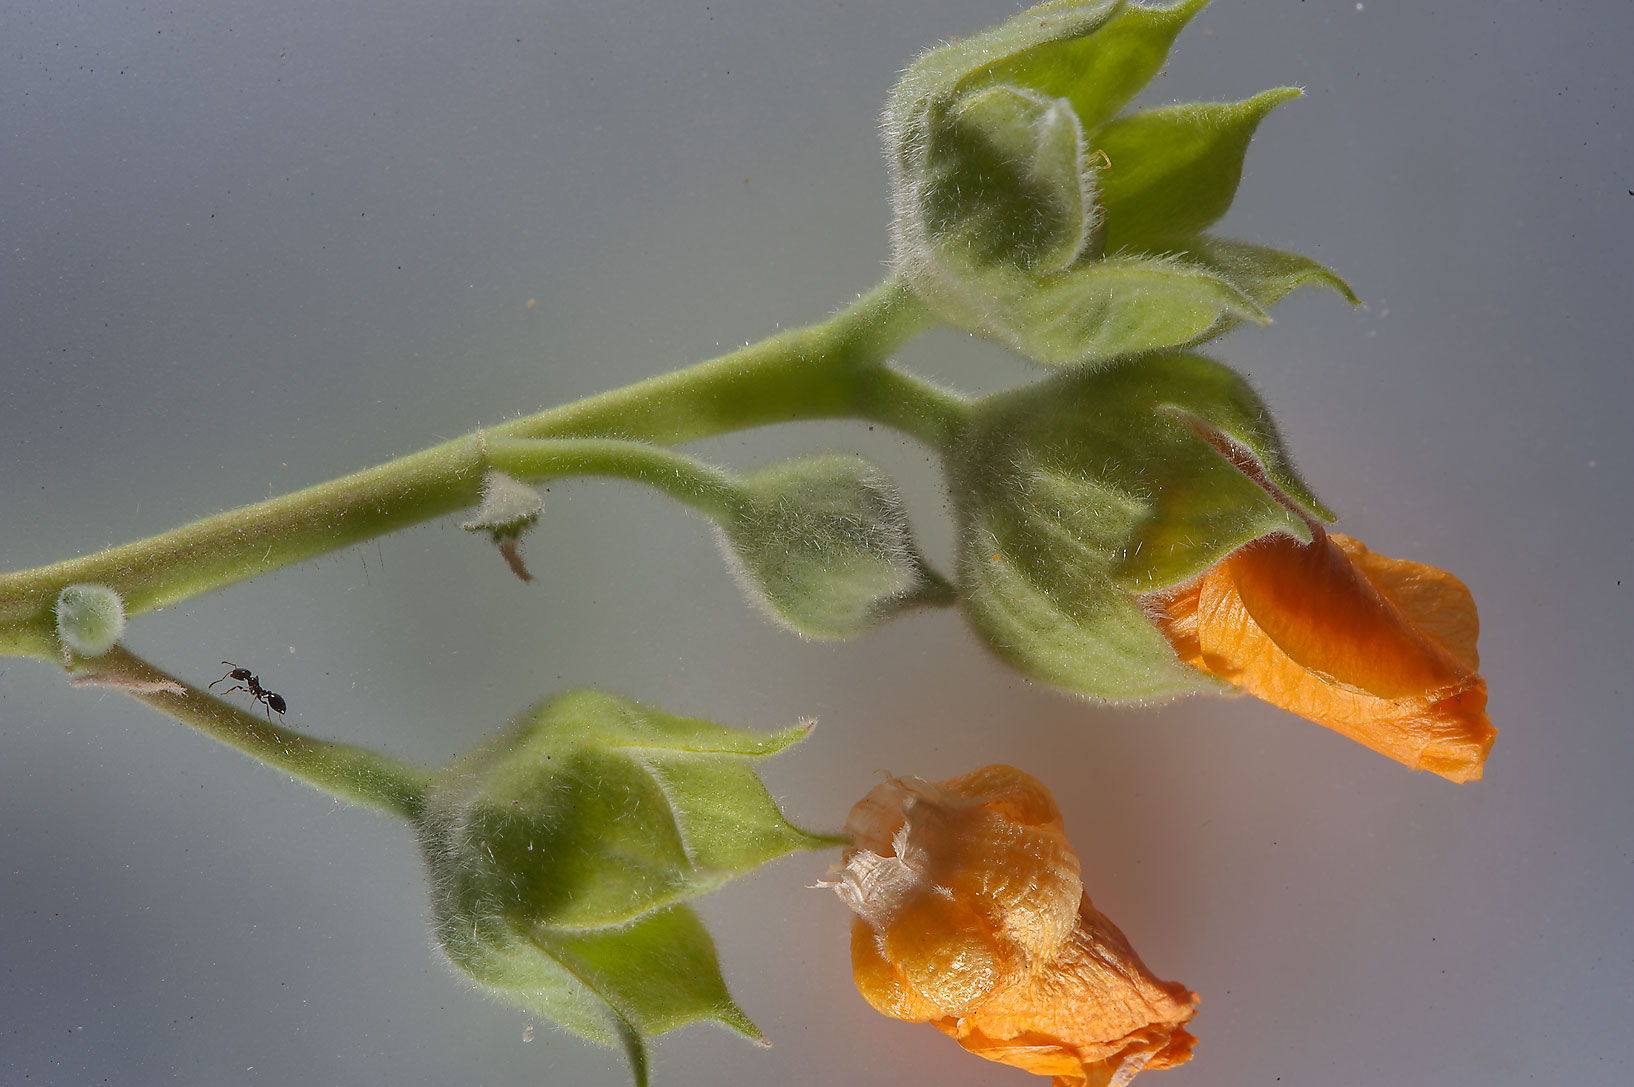 Flower buds of Abutilon figarianum taken from...Al Sham St. in West Bay. Doha, Qatar